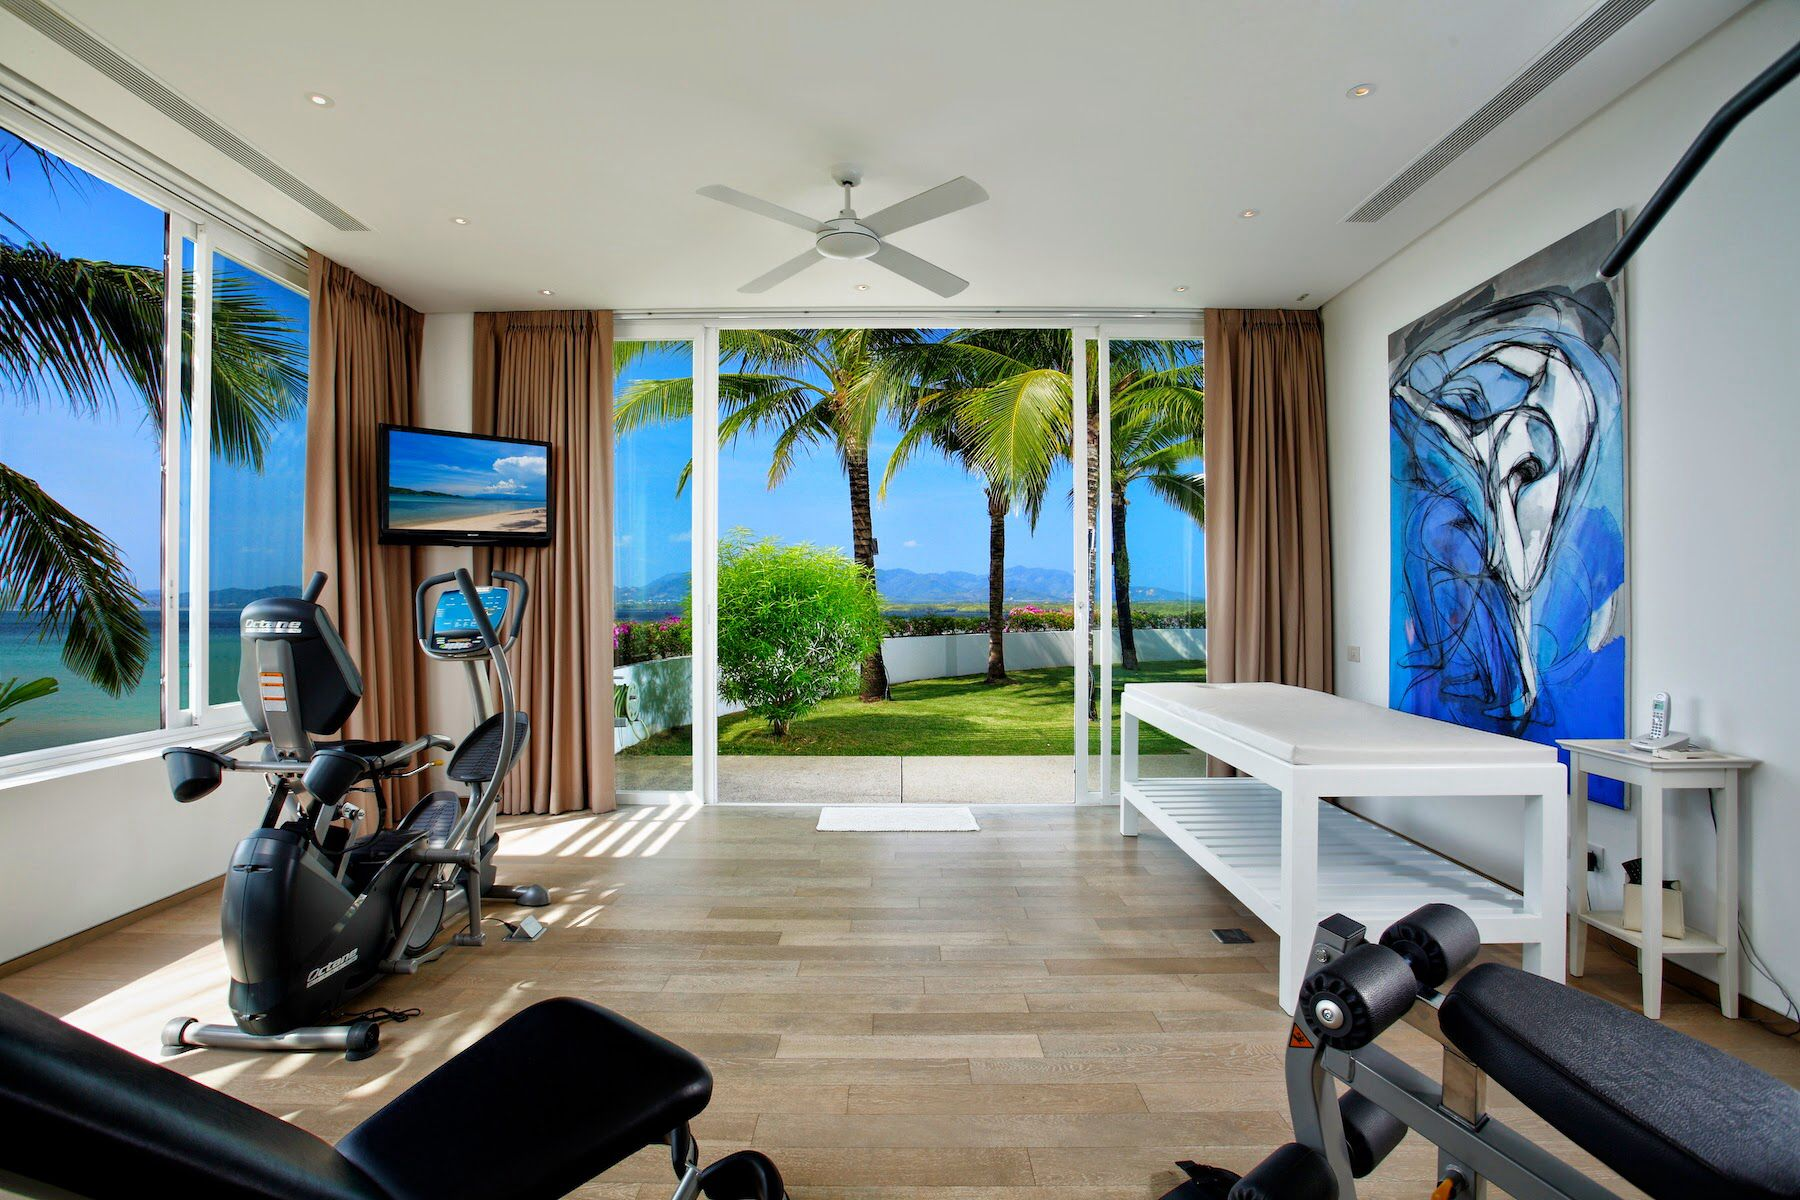 Staying fit while on holiday at Villa Kalipay is never an issue. Work out at the gym while enjoying a stunning view of the Phuket Bay. http://bit.ly/Phuket-Luxury-Villas #villakalipay #phuket #capeyamu #fitness #gym #villa #private #phuketvilla #villaphuket #retreat #seaview